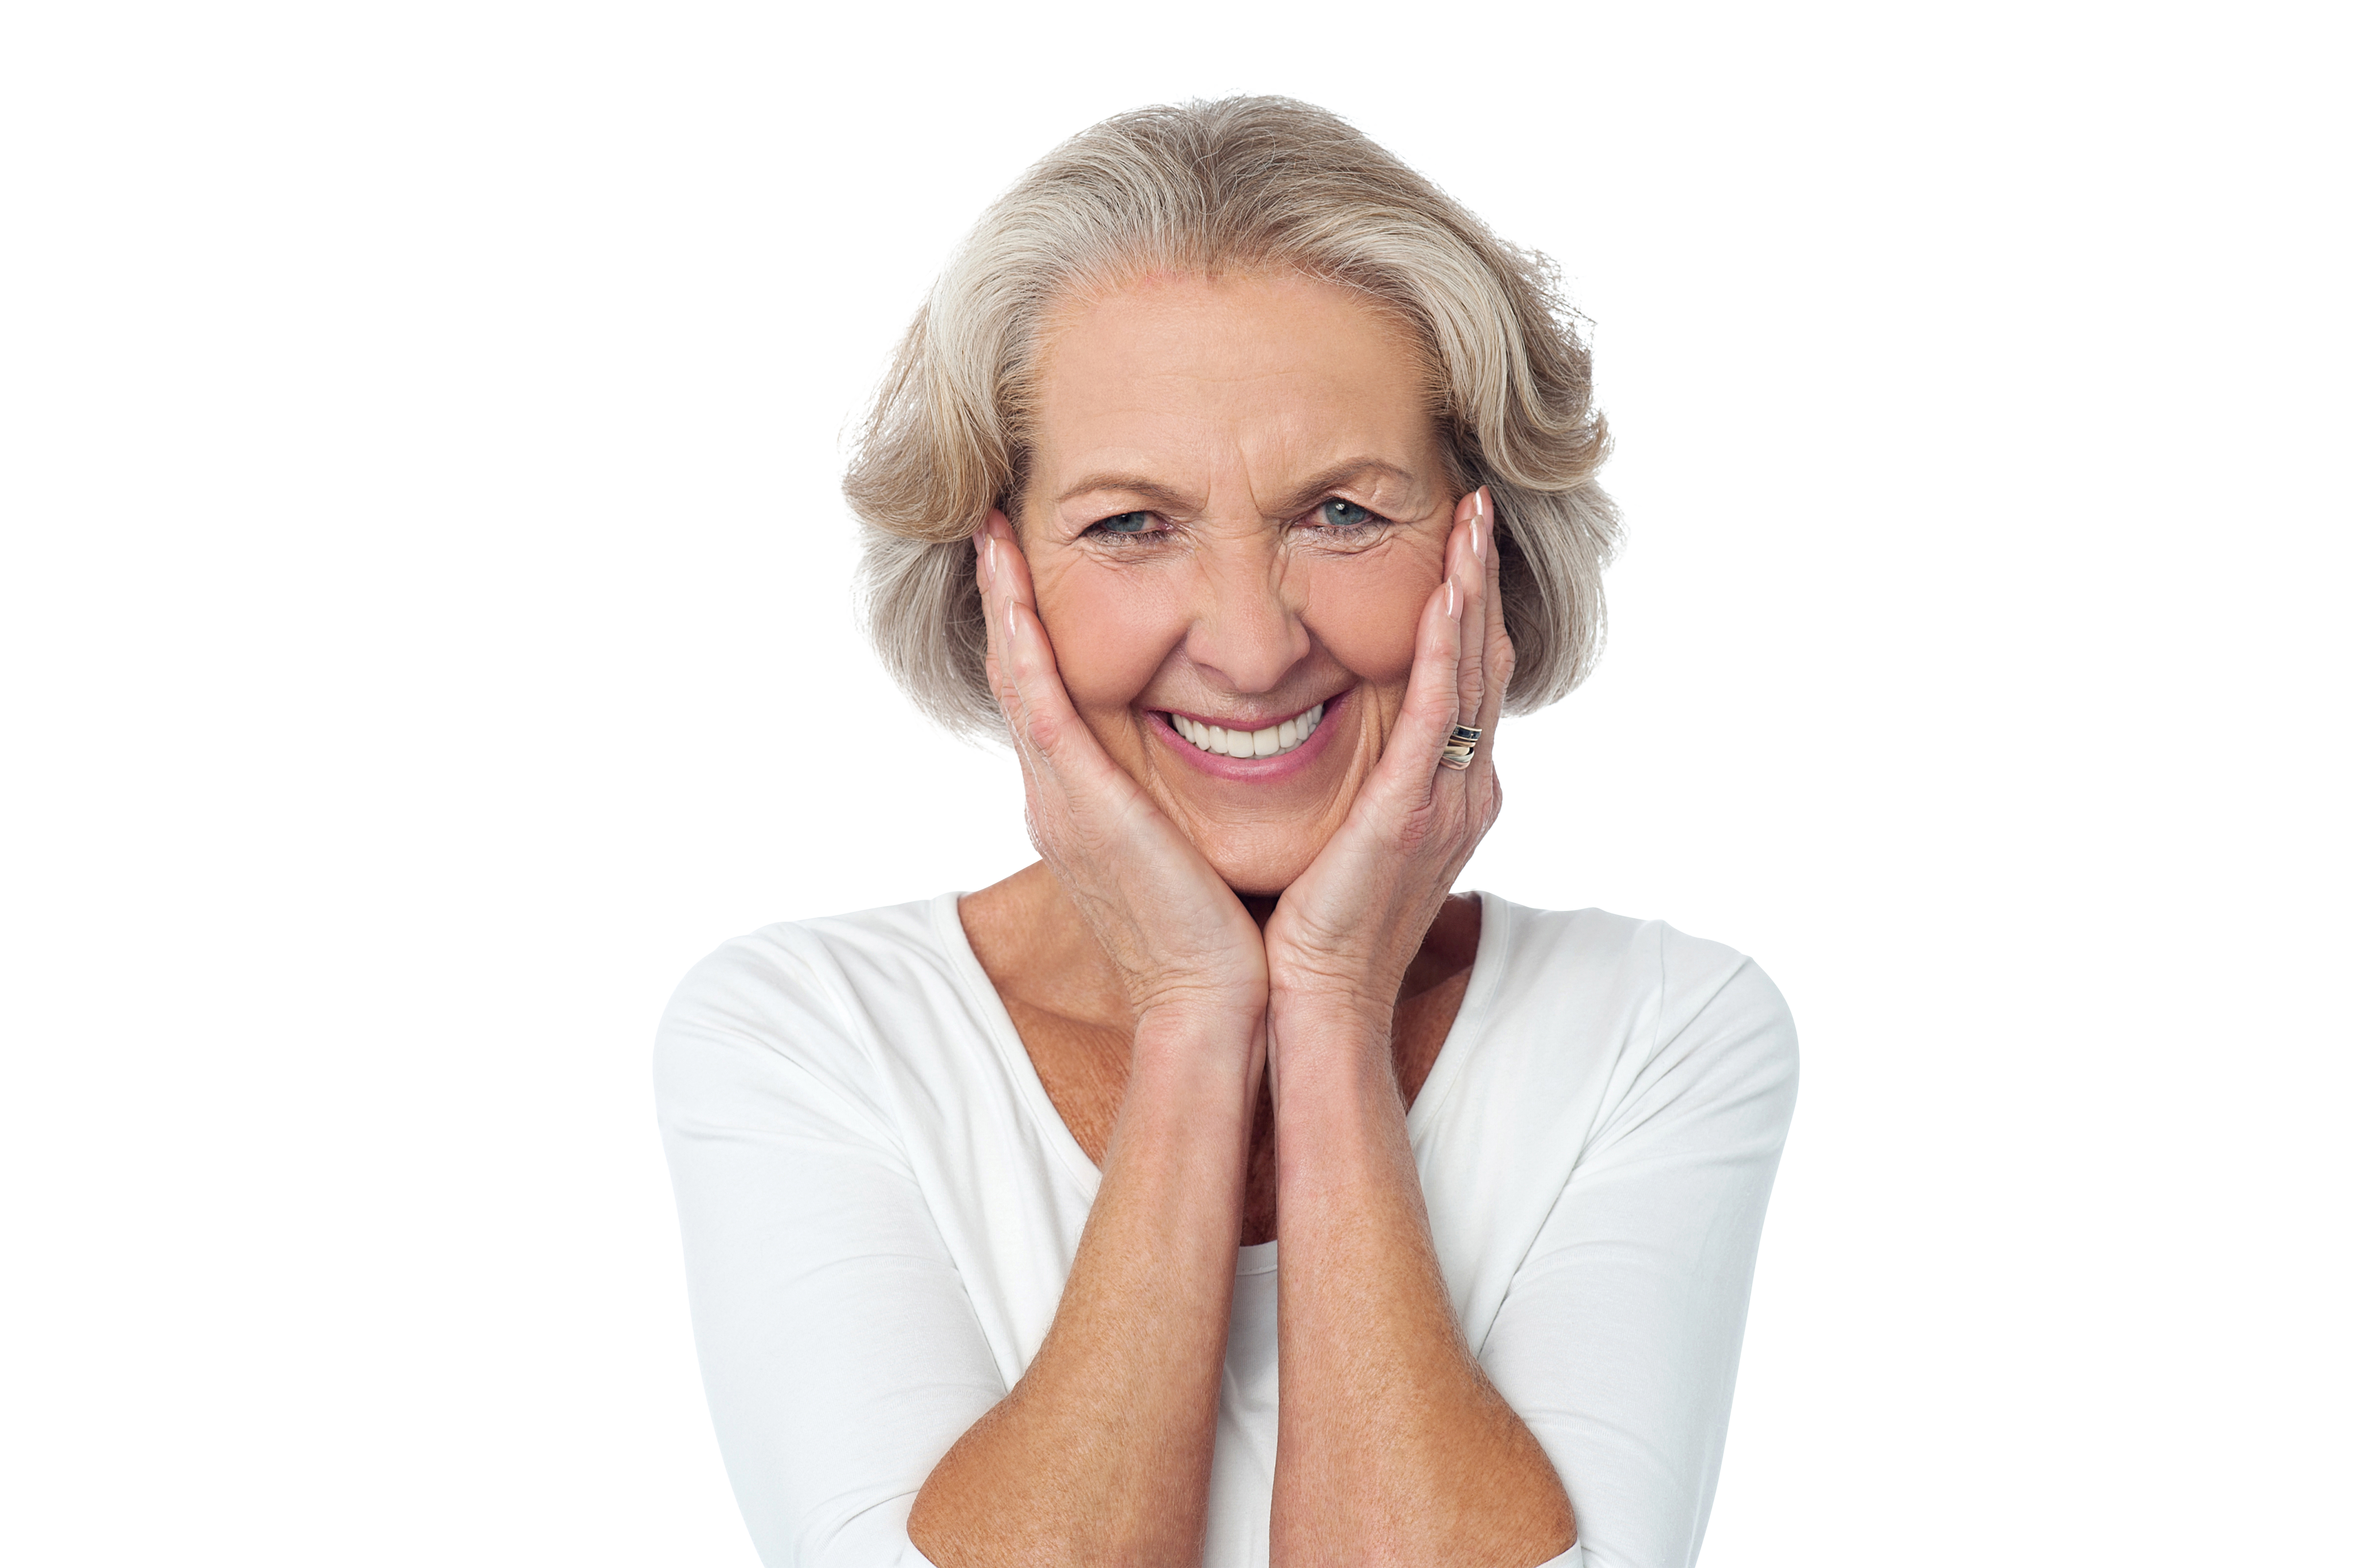 Old Women Png Image Old Women Hair Png Iphone Background Images